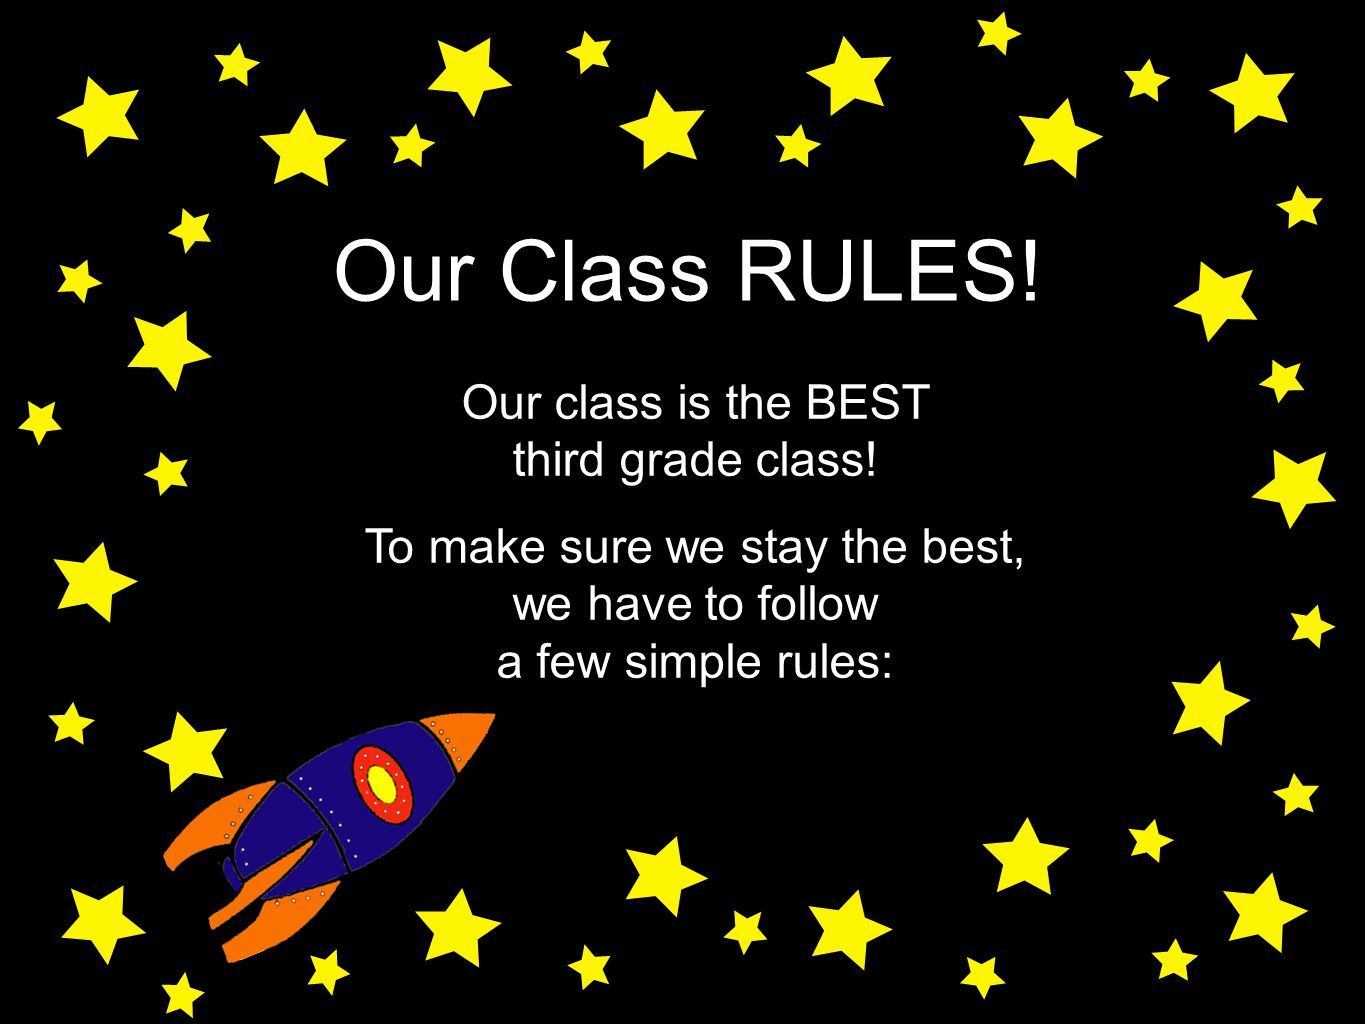 Our Class RULES! Our class is the BEST third grade class! To make sure we stay the best, we have to follow a few simple rules: